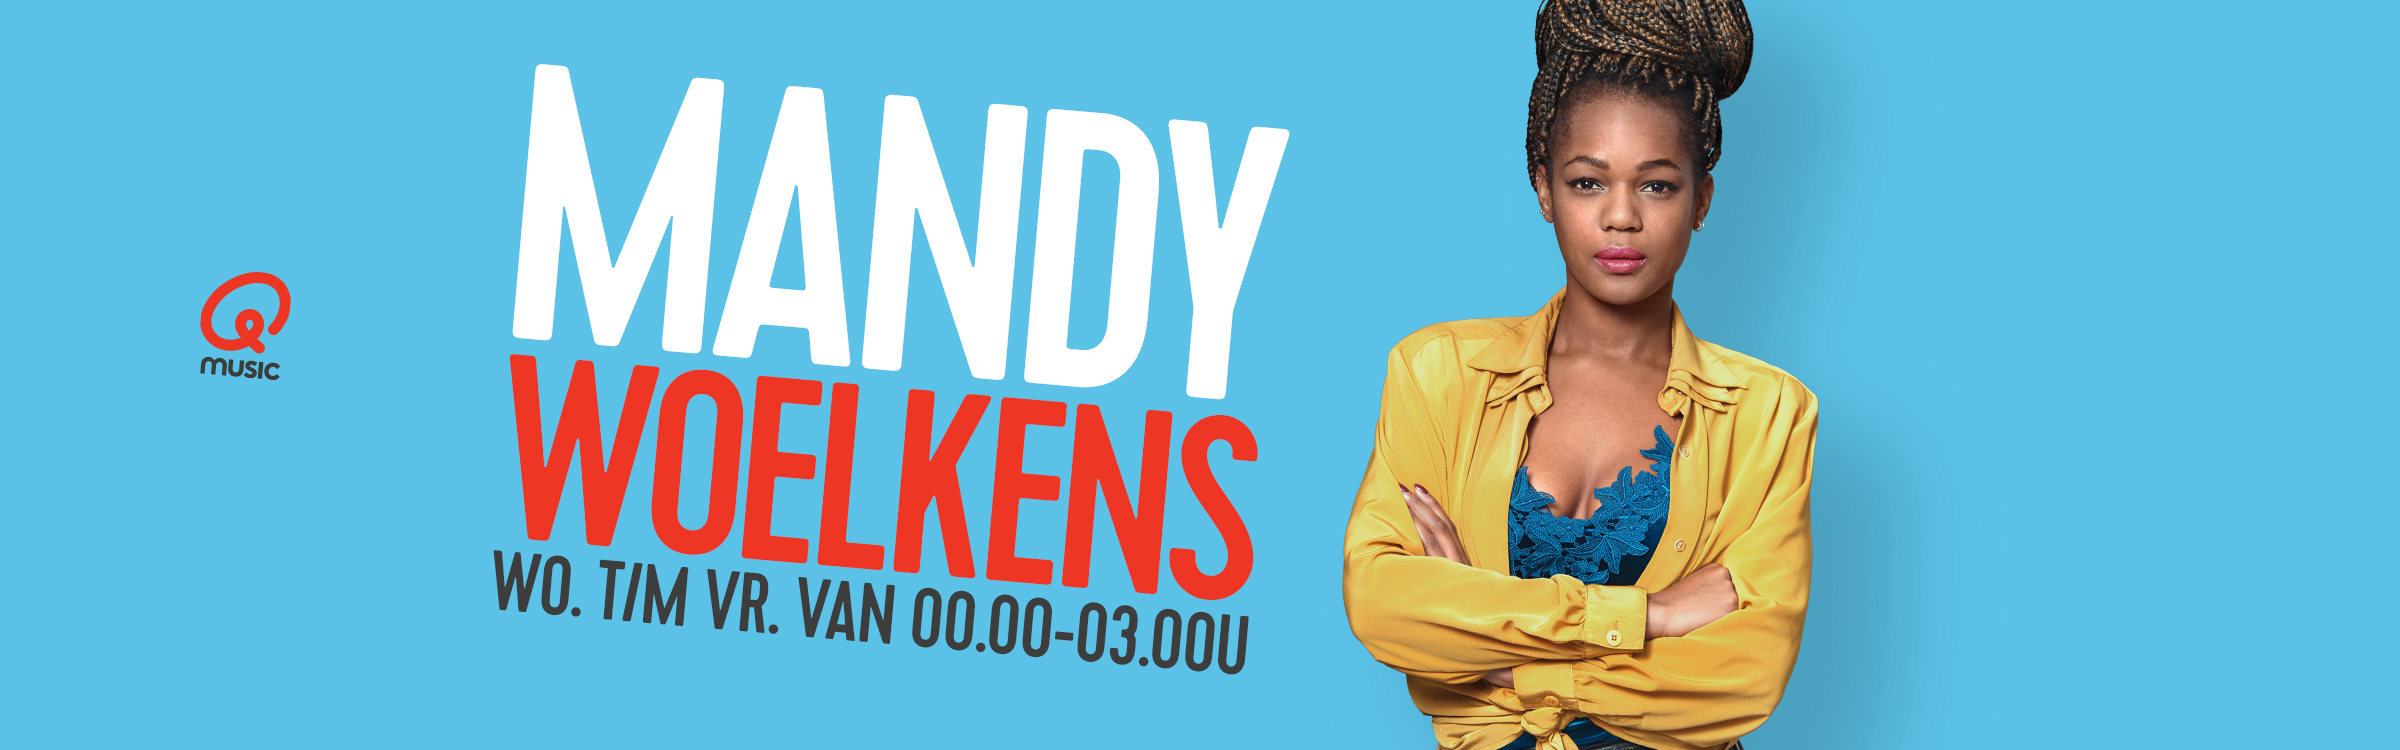 Qmusic actionheader mandy